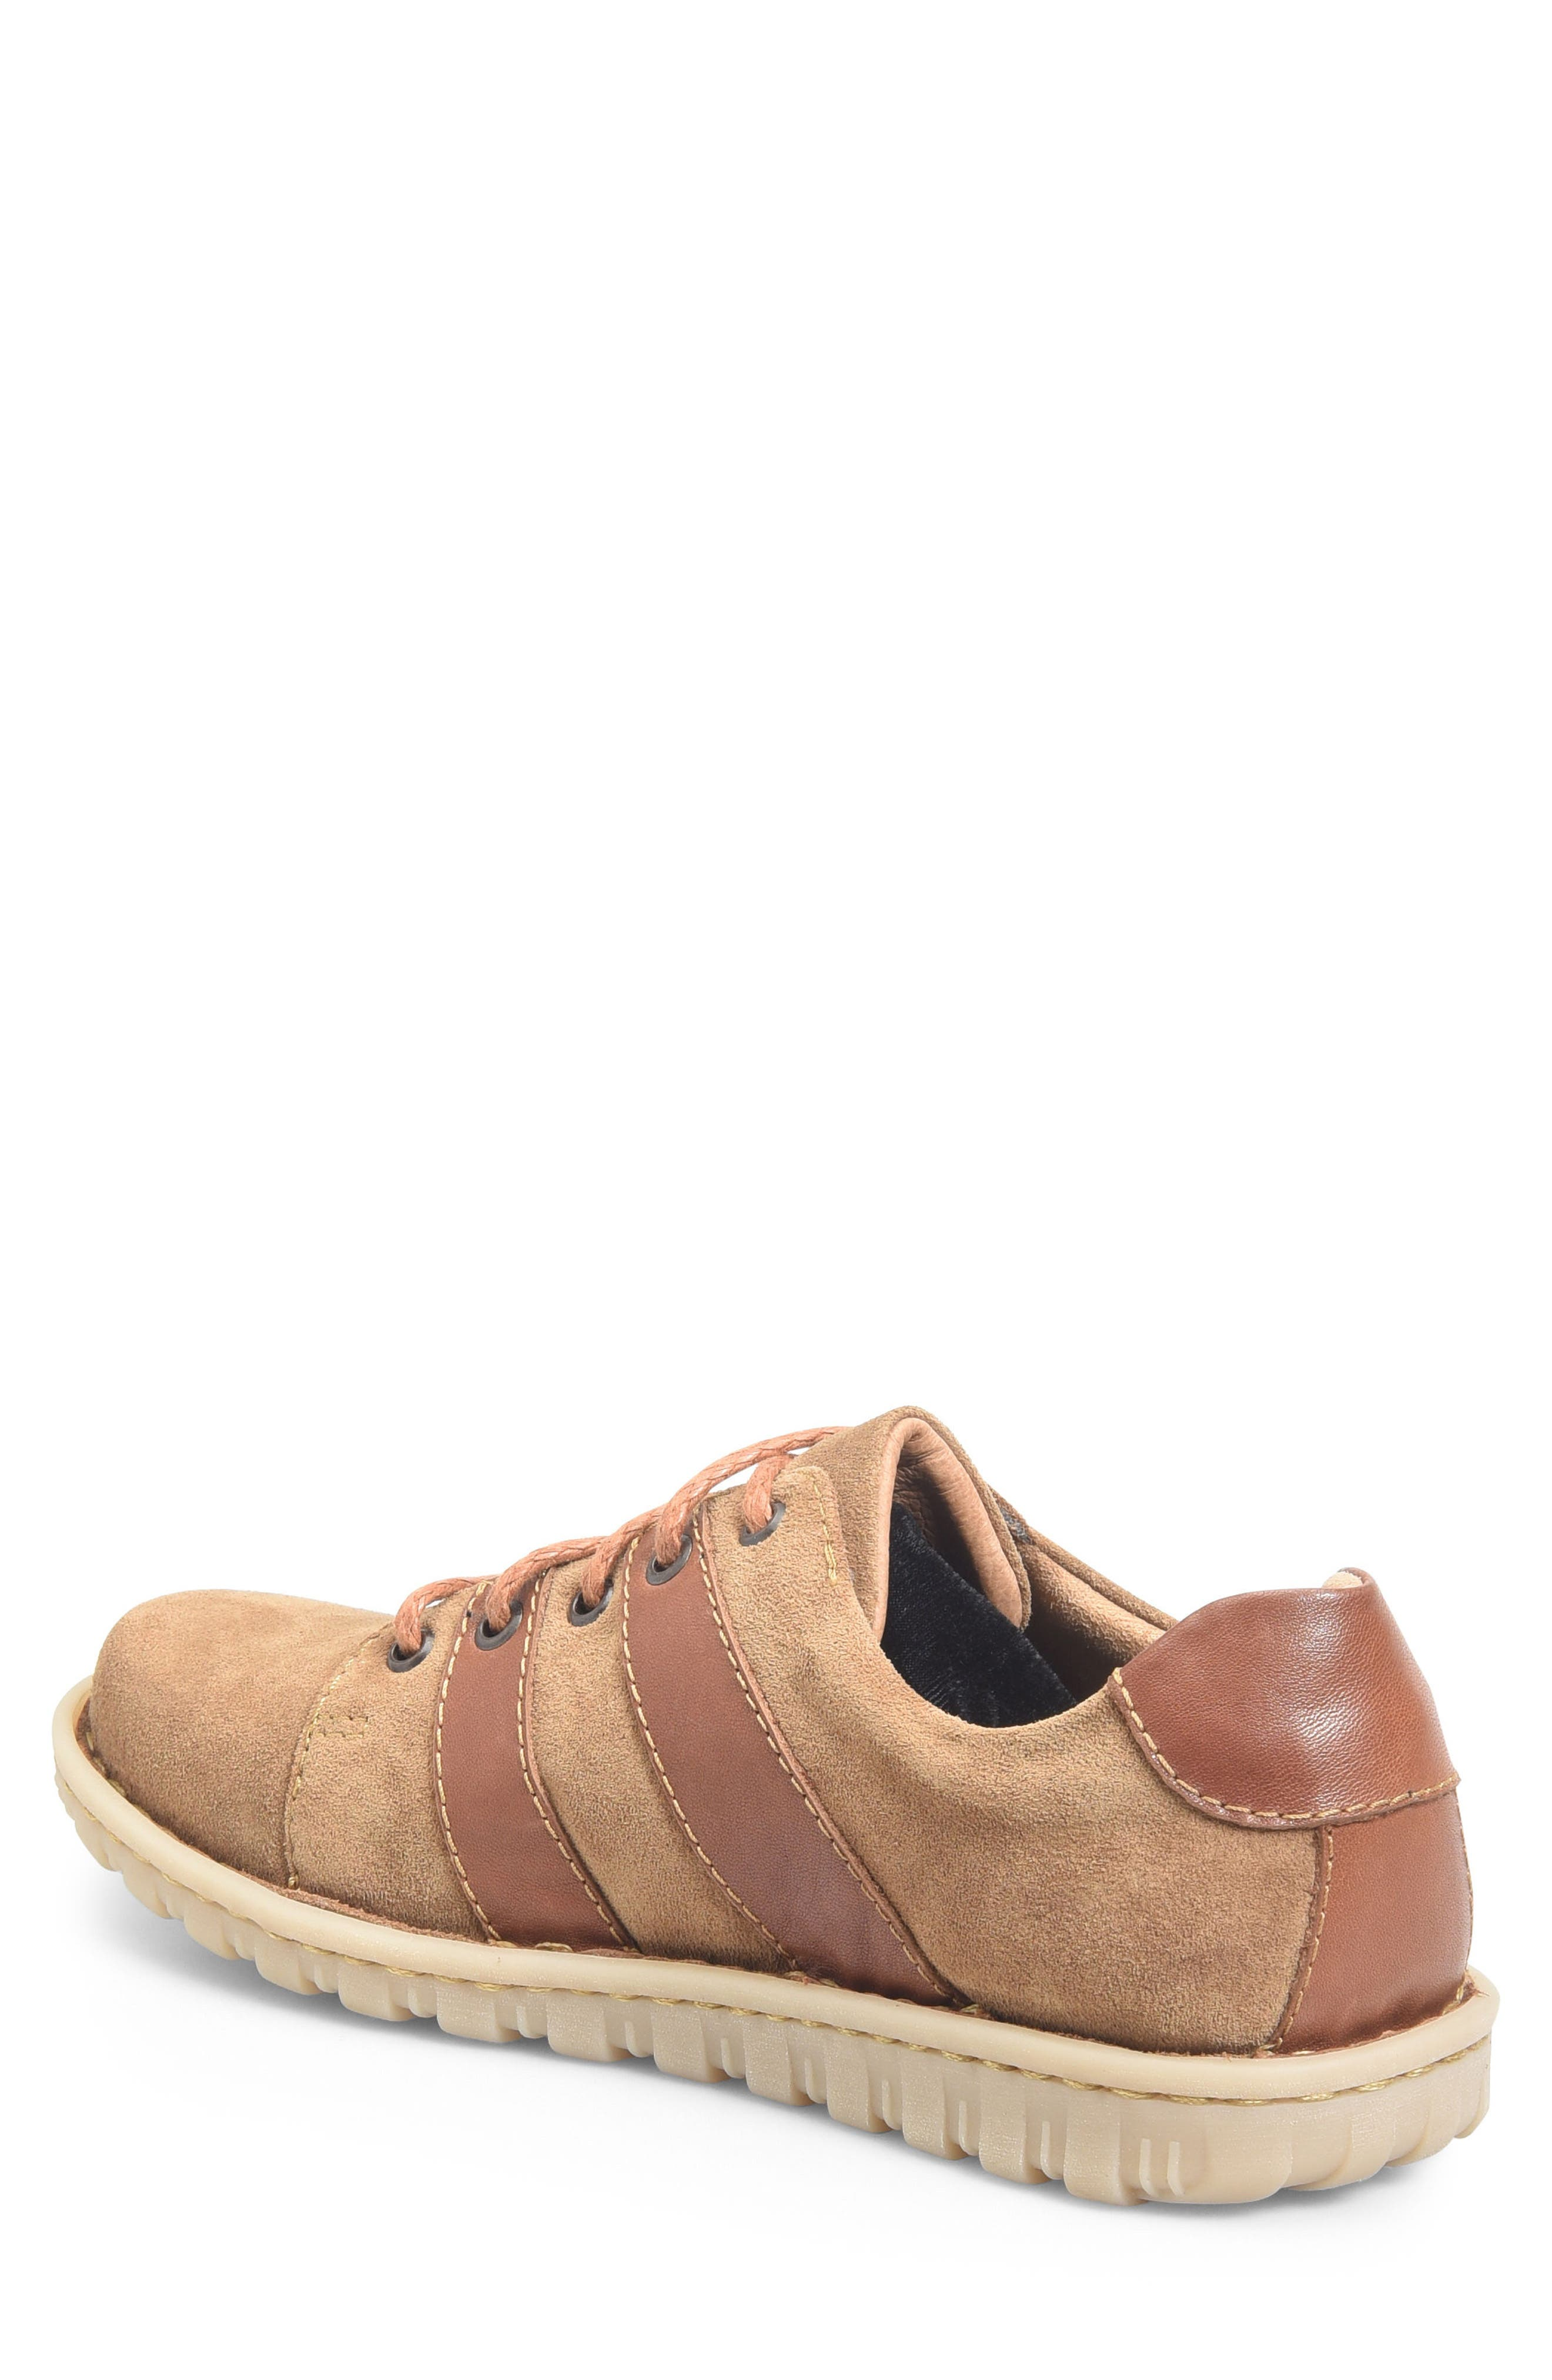 Pool Plain Toe Derby,                             Alternate thumbnail 2, color,                             Brown/ Rust Leather